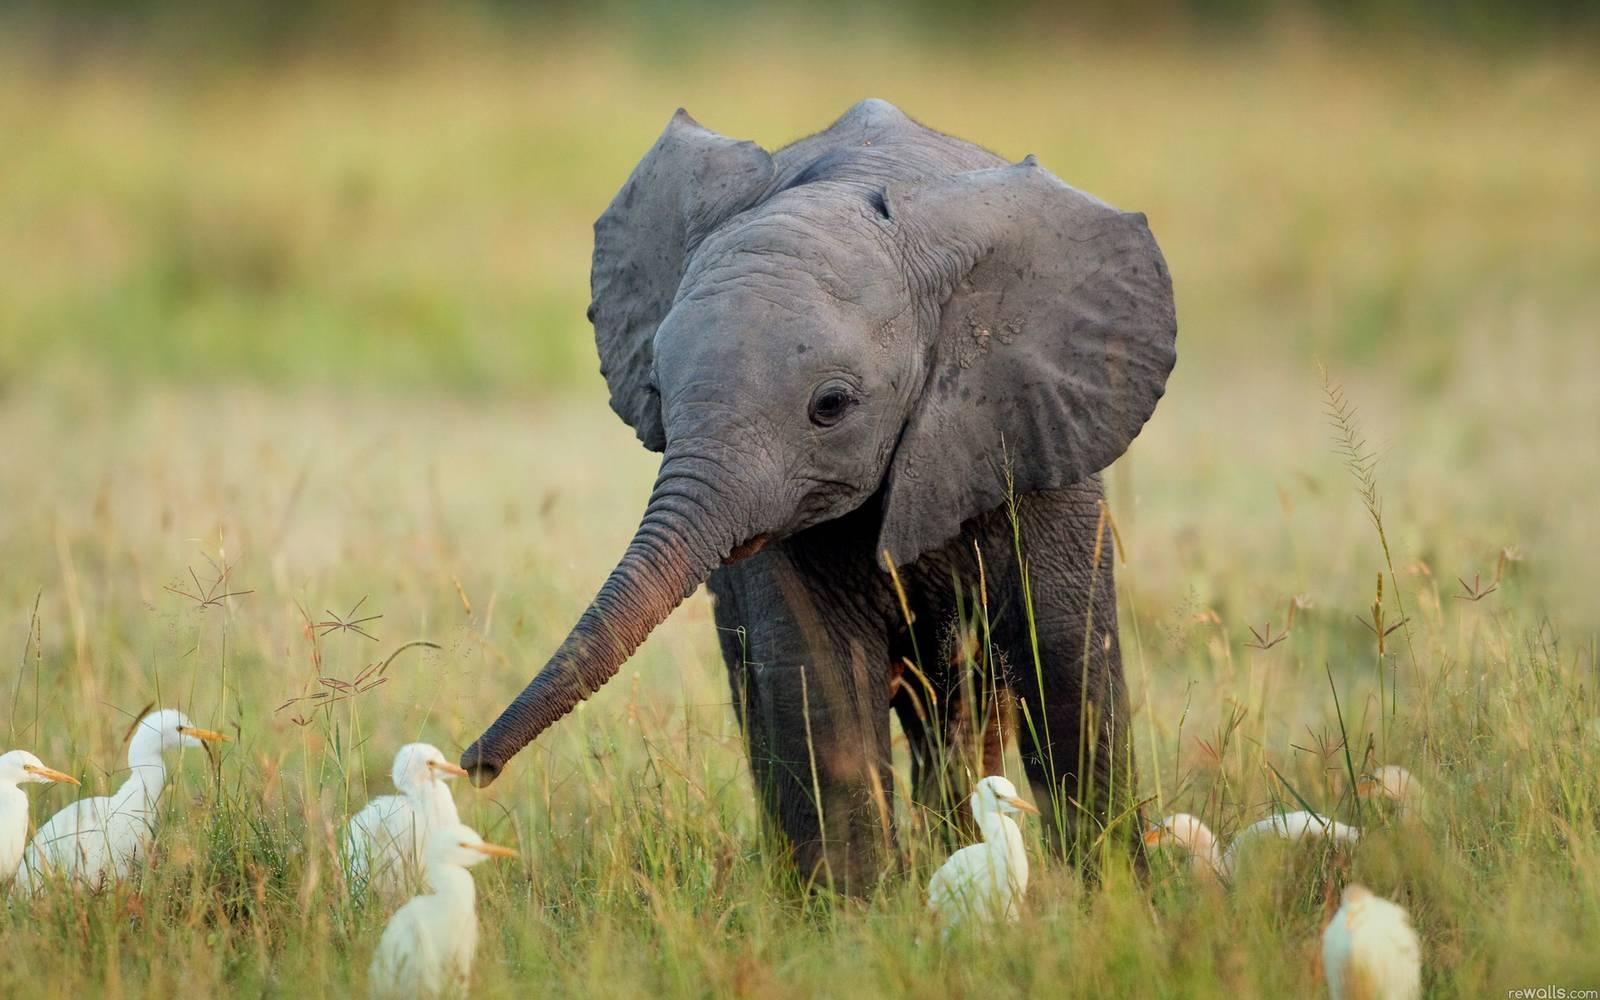 Baby elephant, hangin' with some egrets. http://t.co/Mua4de8t